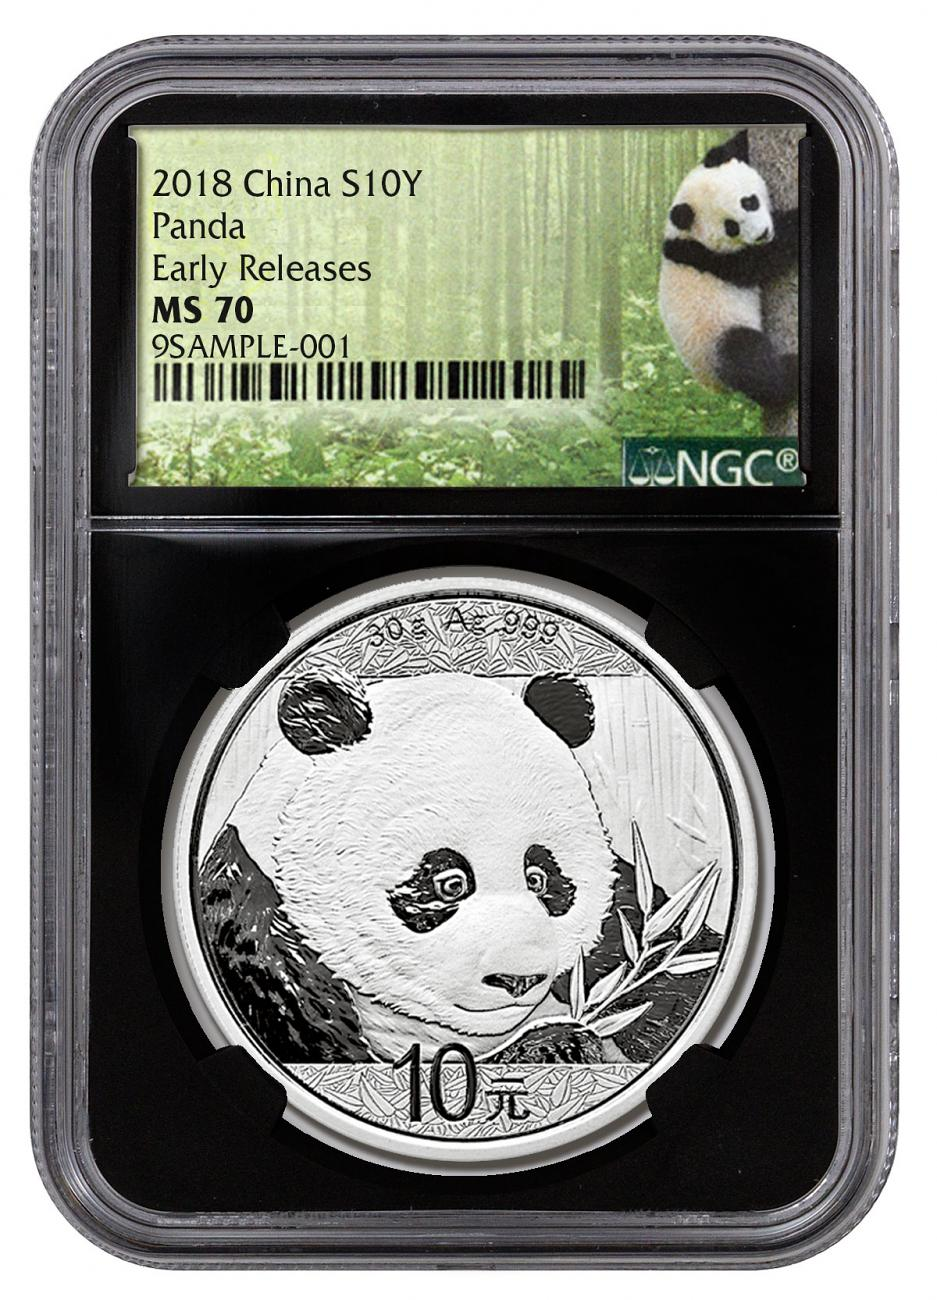 2018 China 30 g Silver Panda - 35th Anniversary ¥10 Coin NGC MS70 ER Black Core Holder Exclusive Panda Label